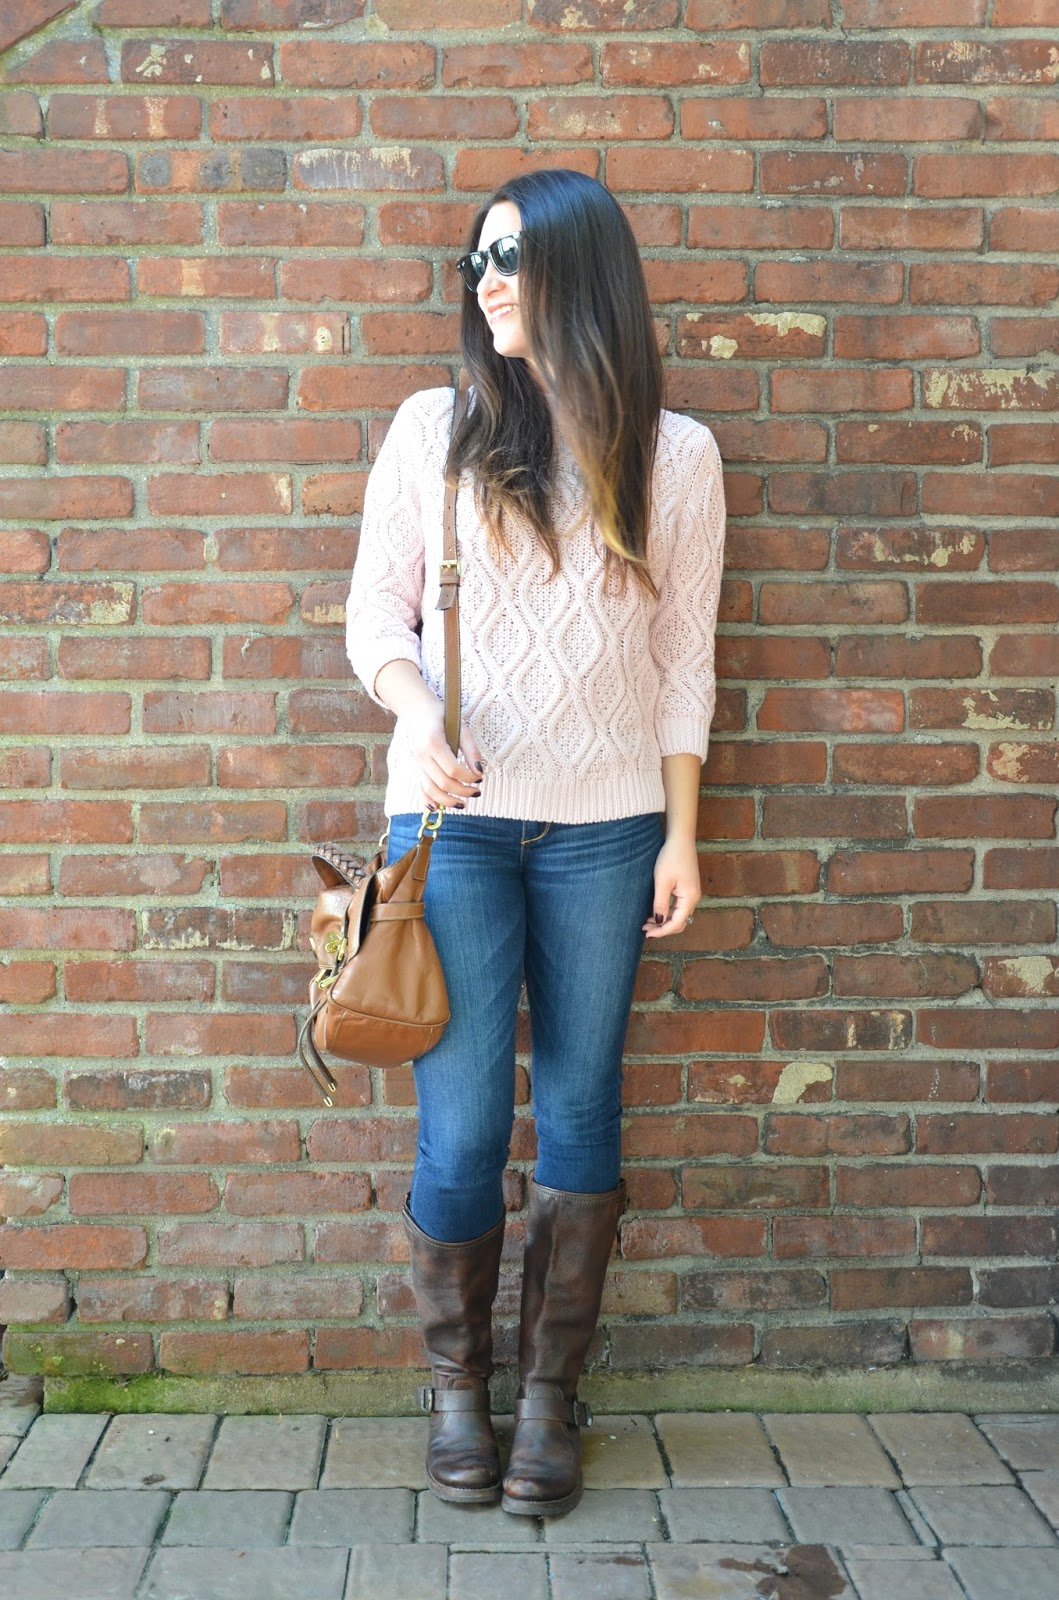 cozy knits | zara cable knit sweater, jeans + frye boots